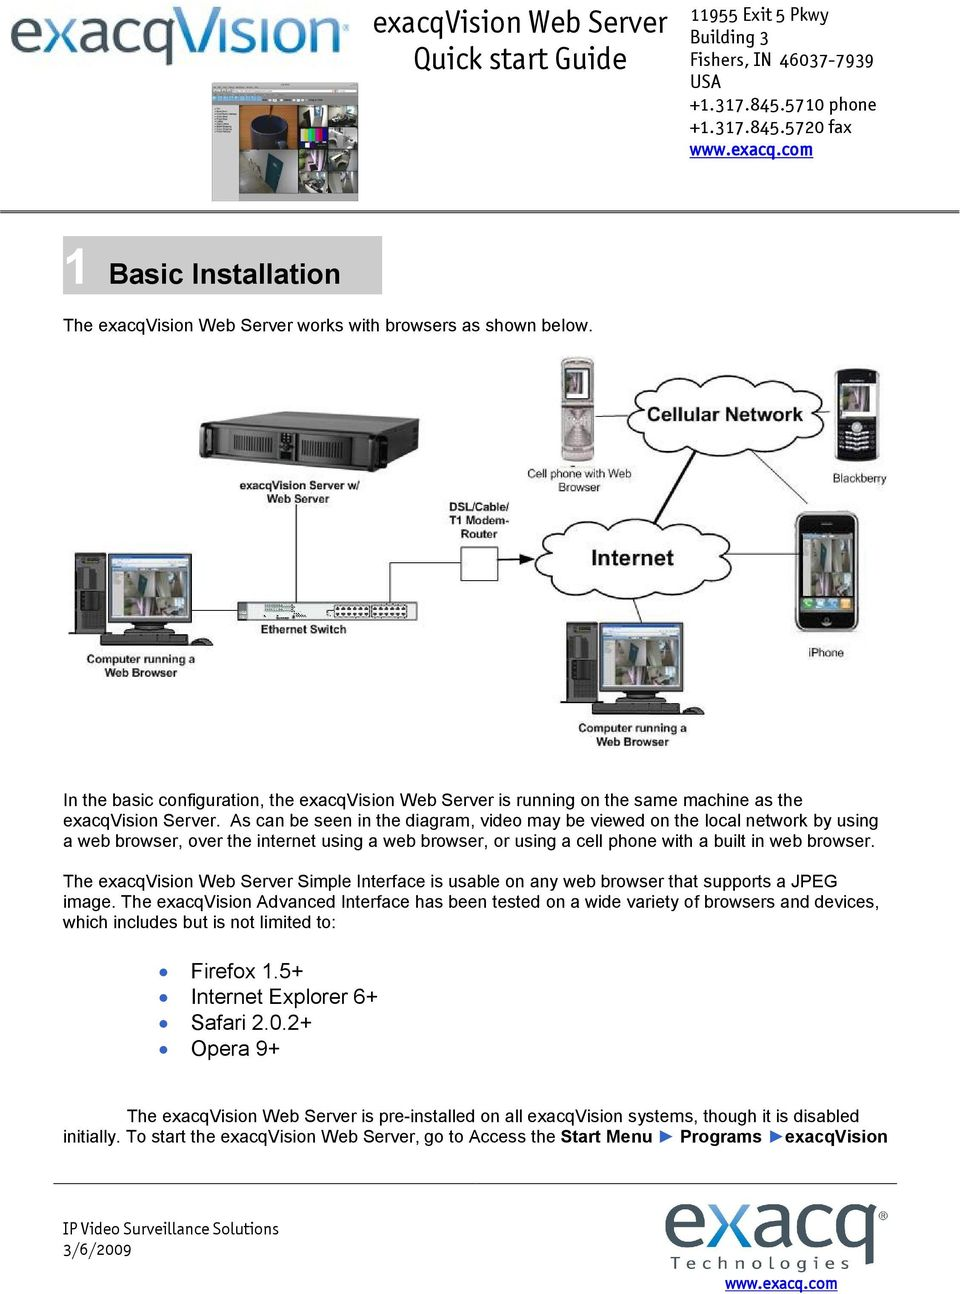 As can be seen in the diagram, video may be viewed on the local network by using a web browser, over the internet using a web browser, or using a cell phone with a built in web browser.